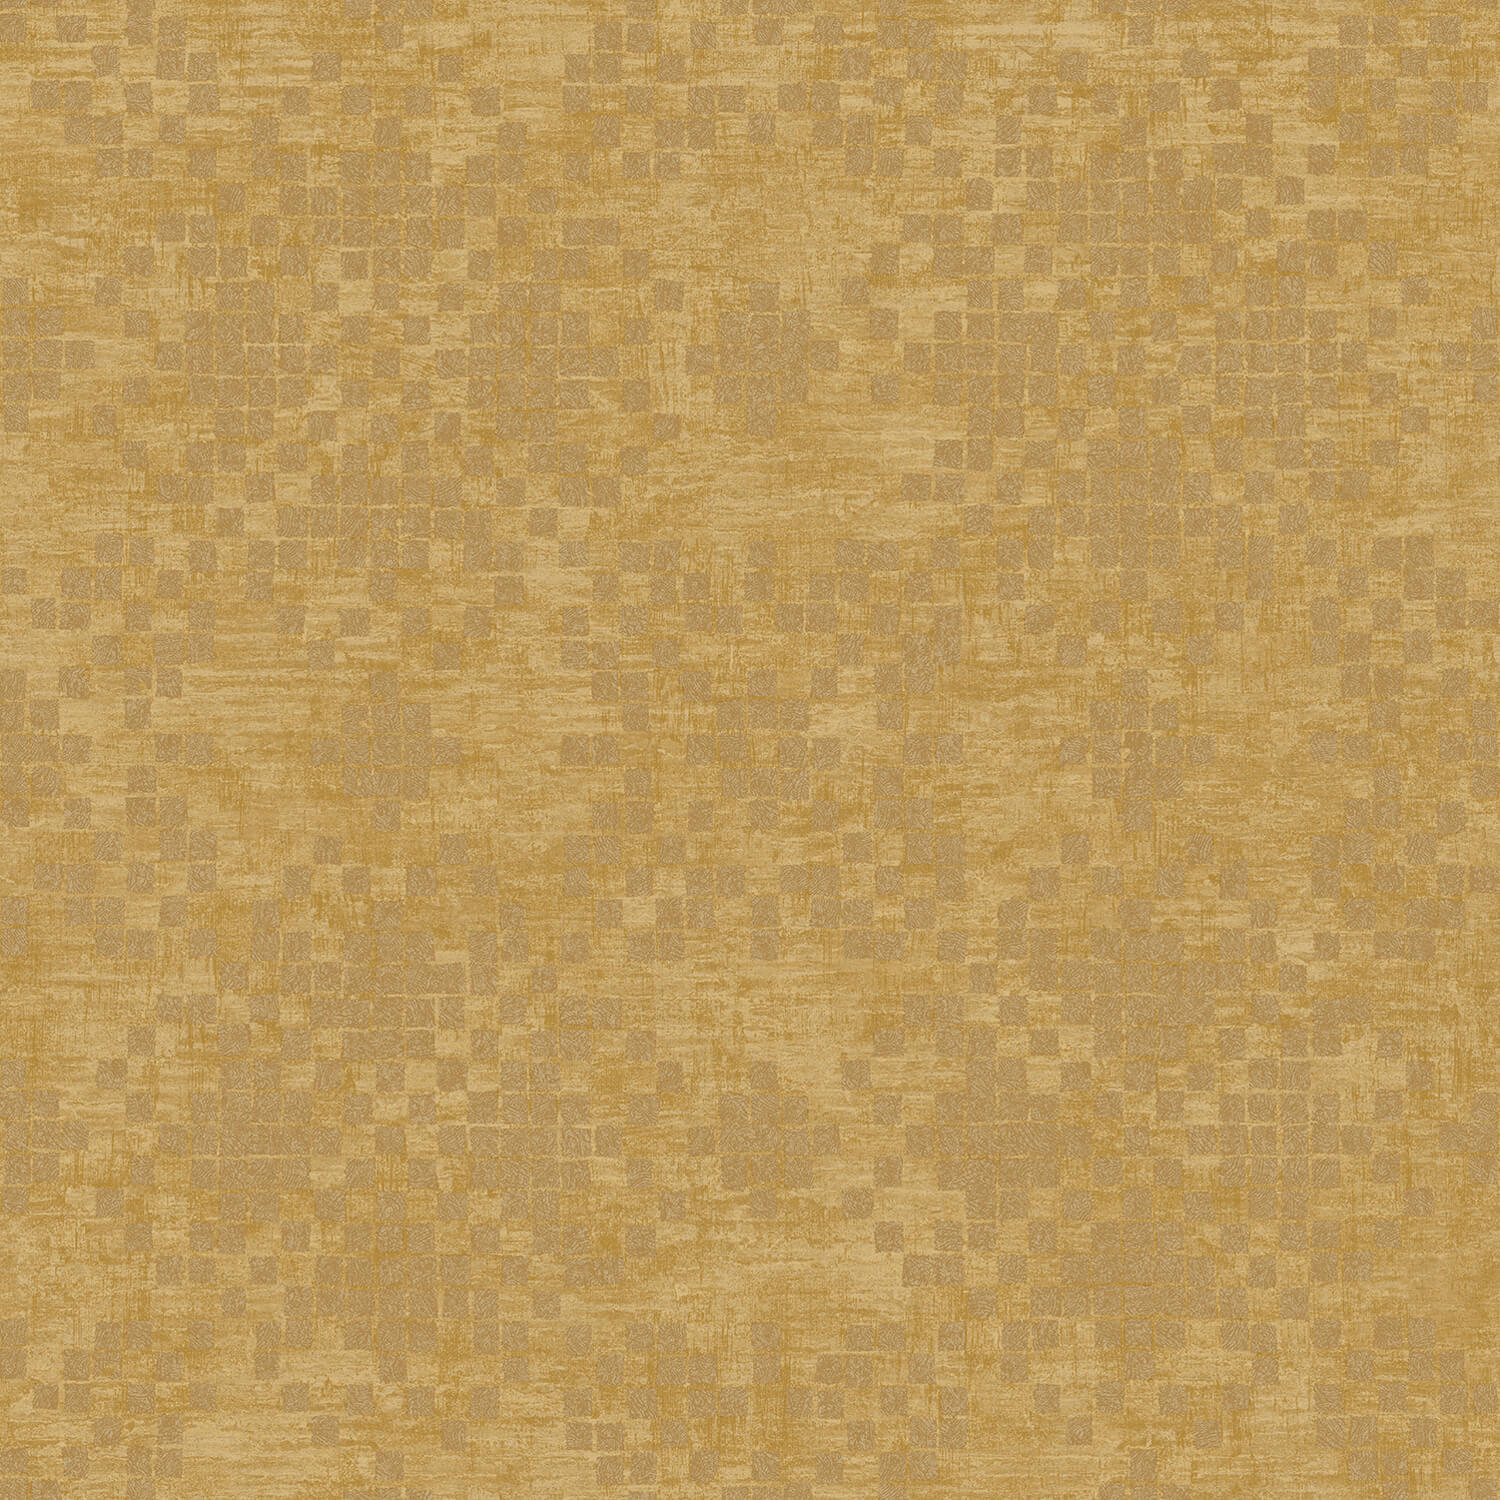 Image of Galerie Check Wallpaper, Gold